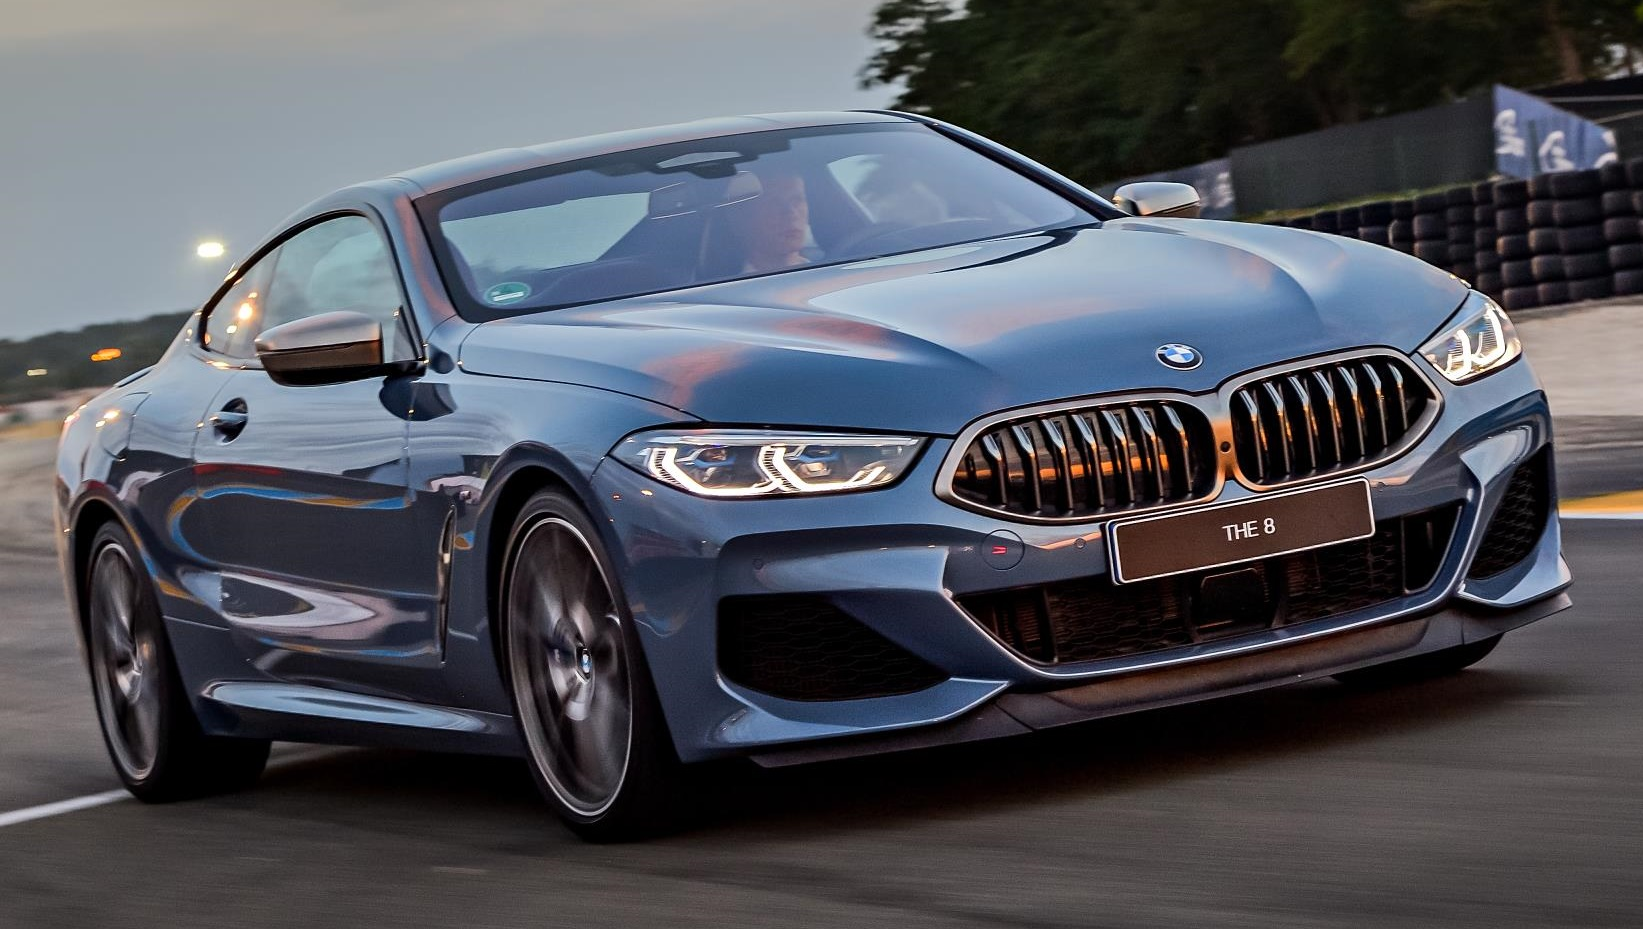 X8 Bmw >> 2019 BMW M850i Pricing Revealed: $111,900 + $995